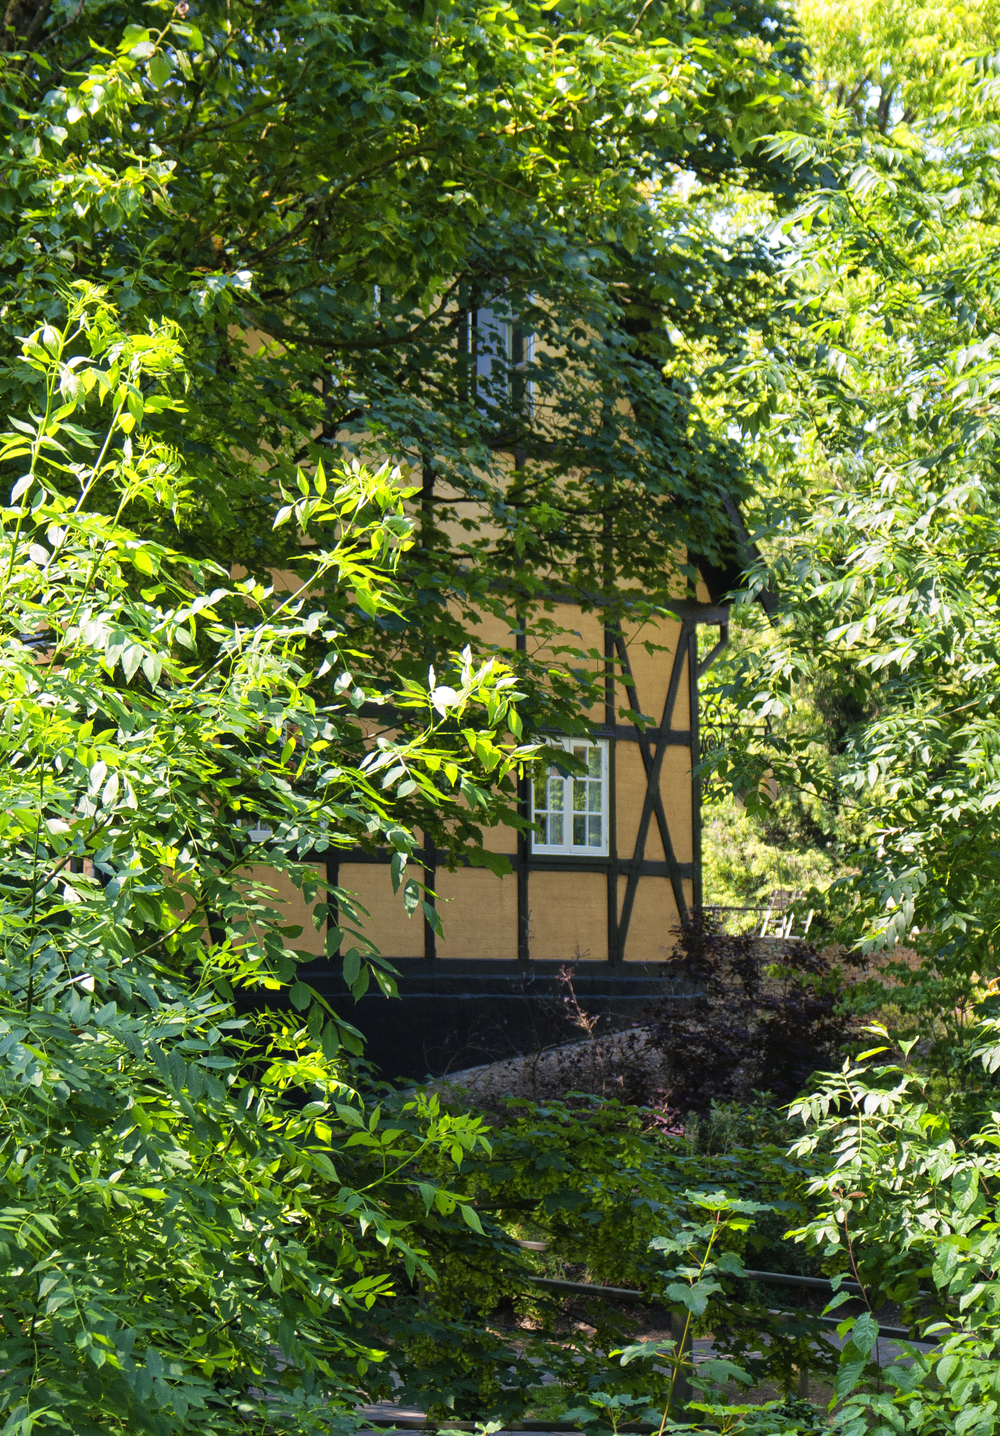 A house at Odense stream Comments